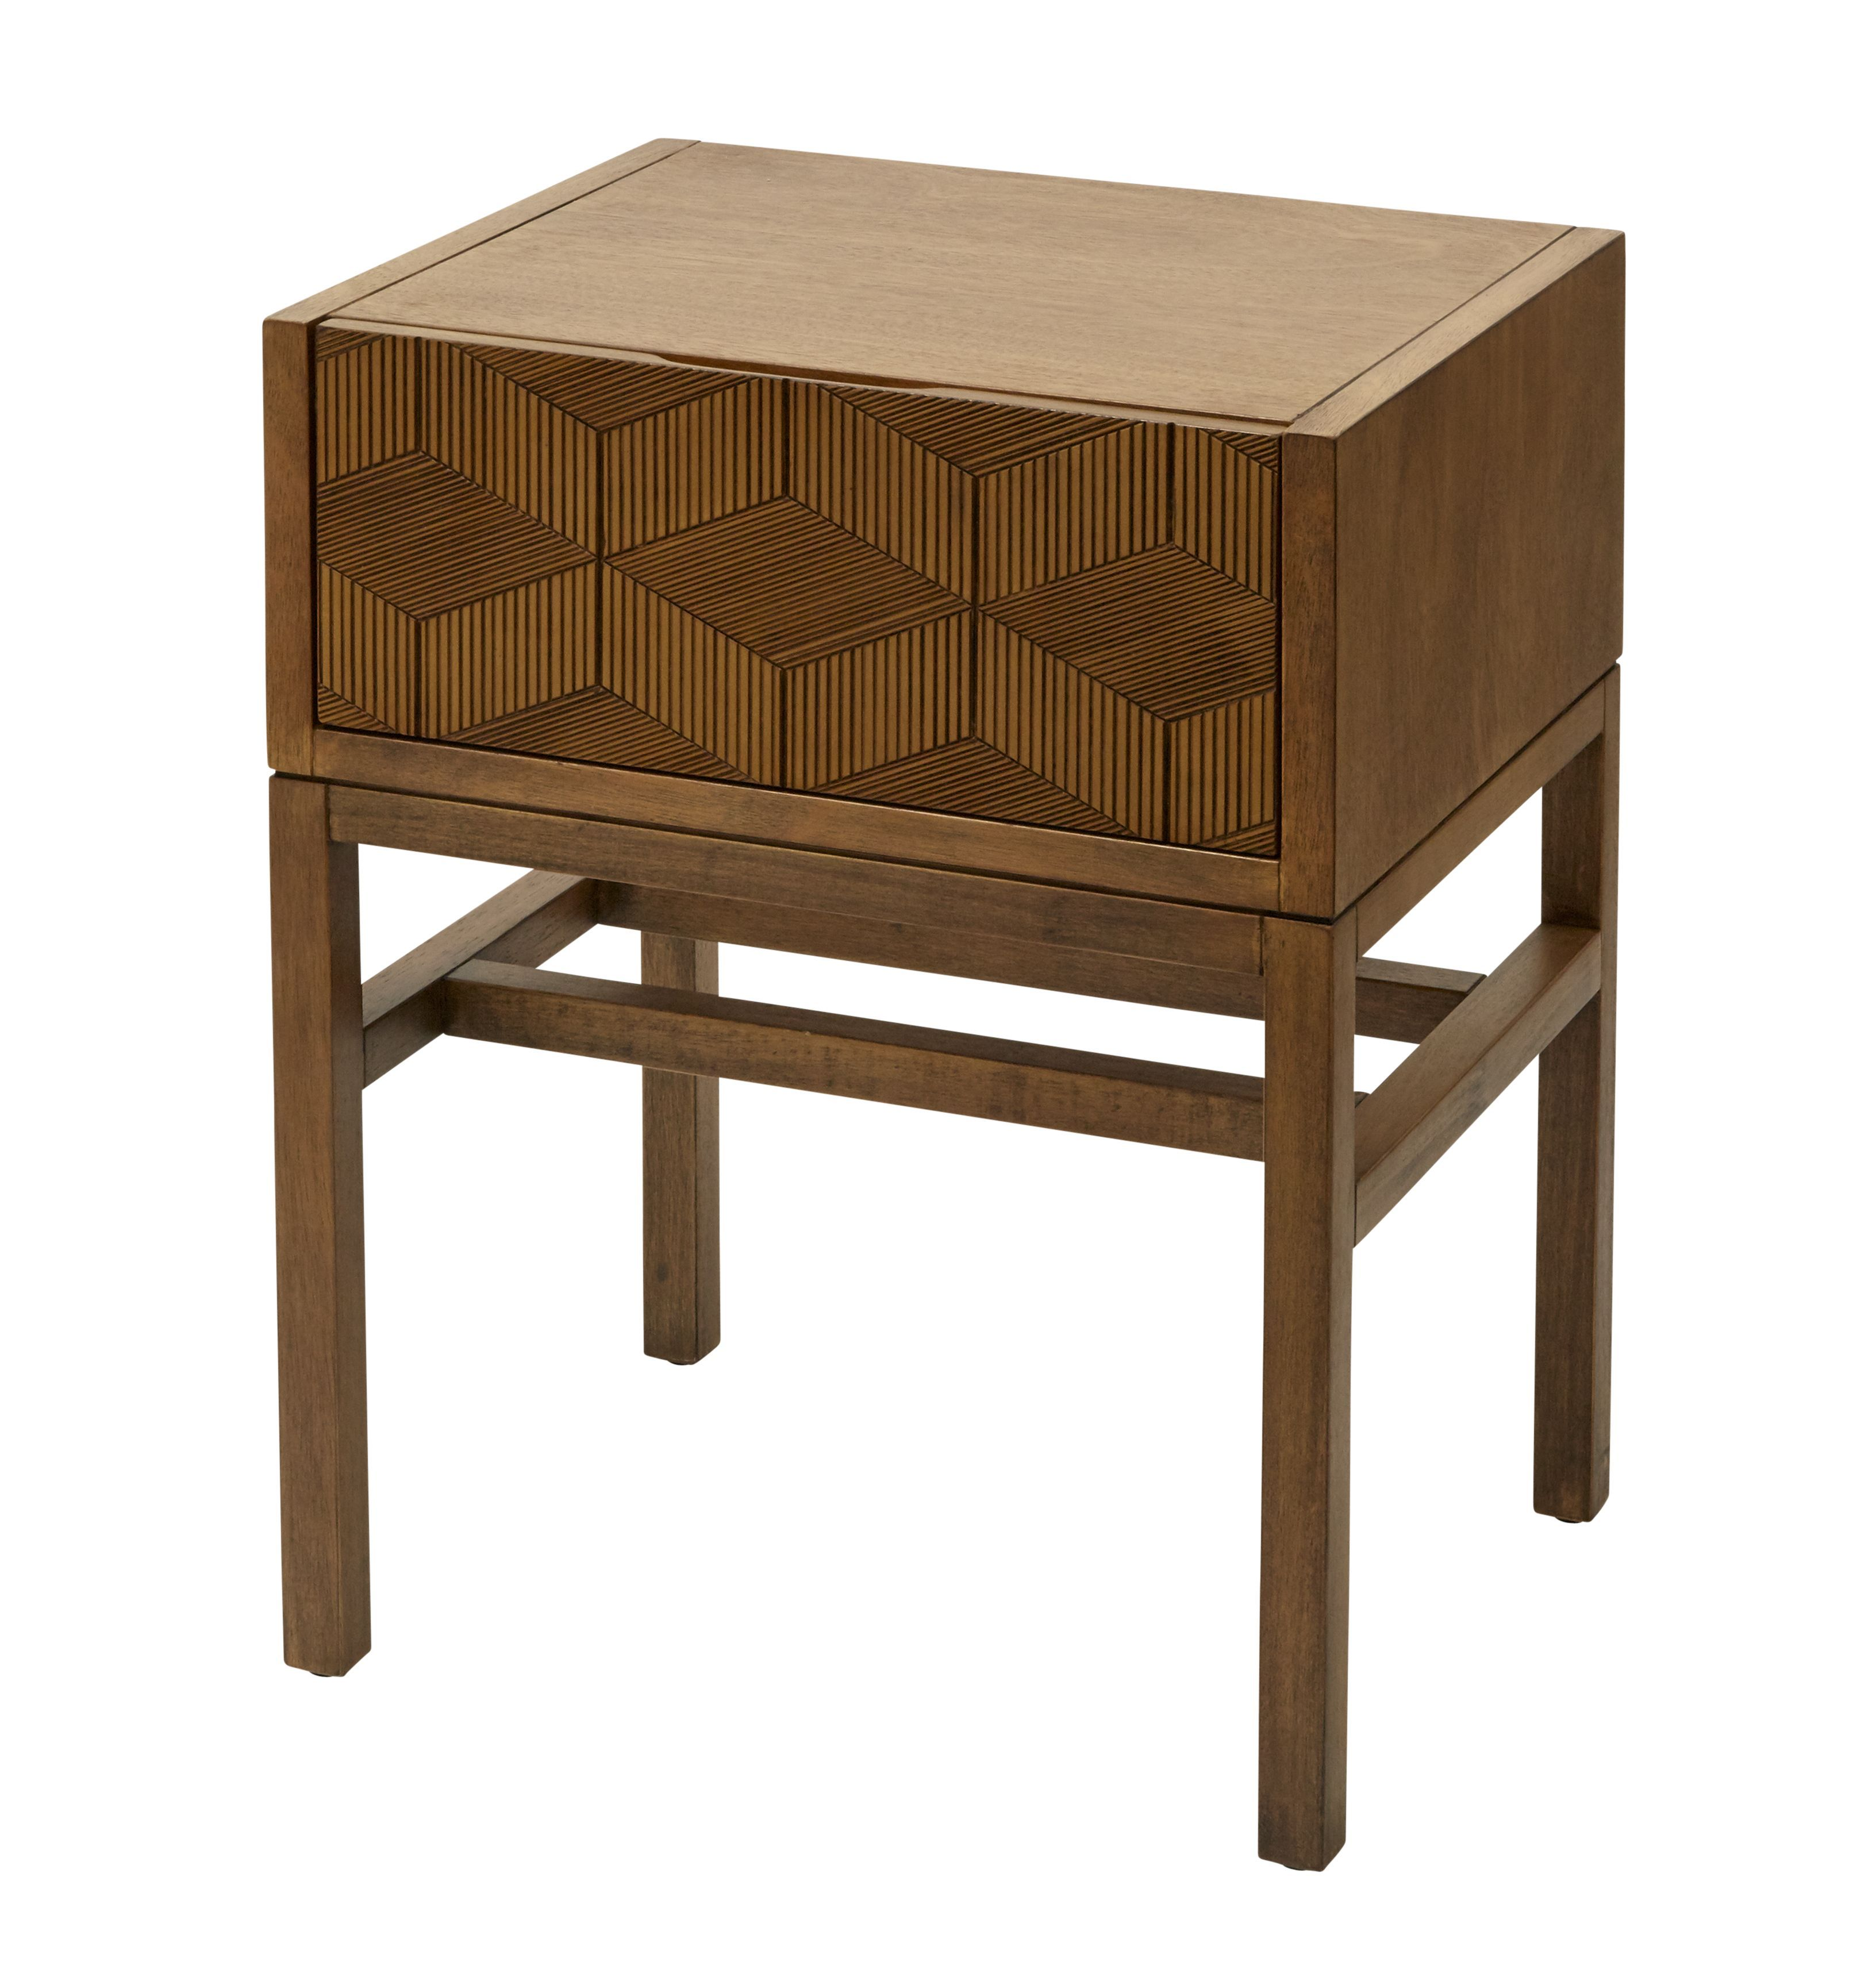 target newest home line just the thing for spring tachuri geometric front accent table brown opalhouse get first look shiny new patio depot entertainment margate coastal style